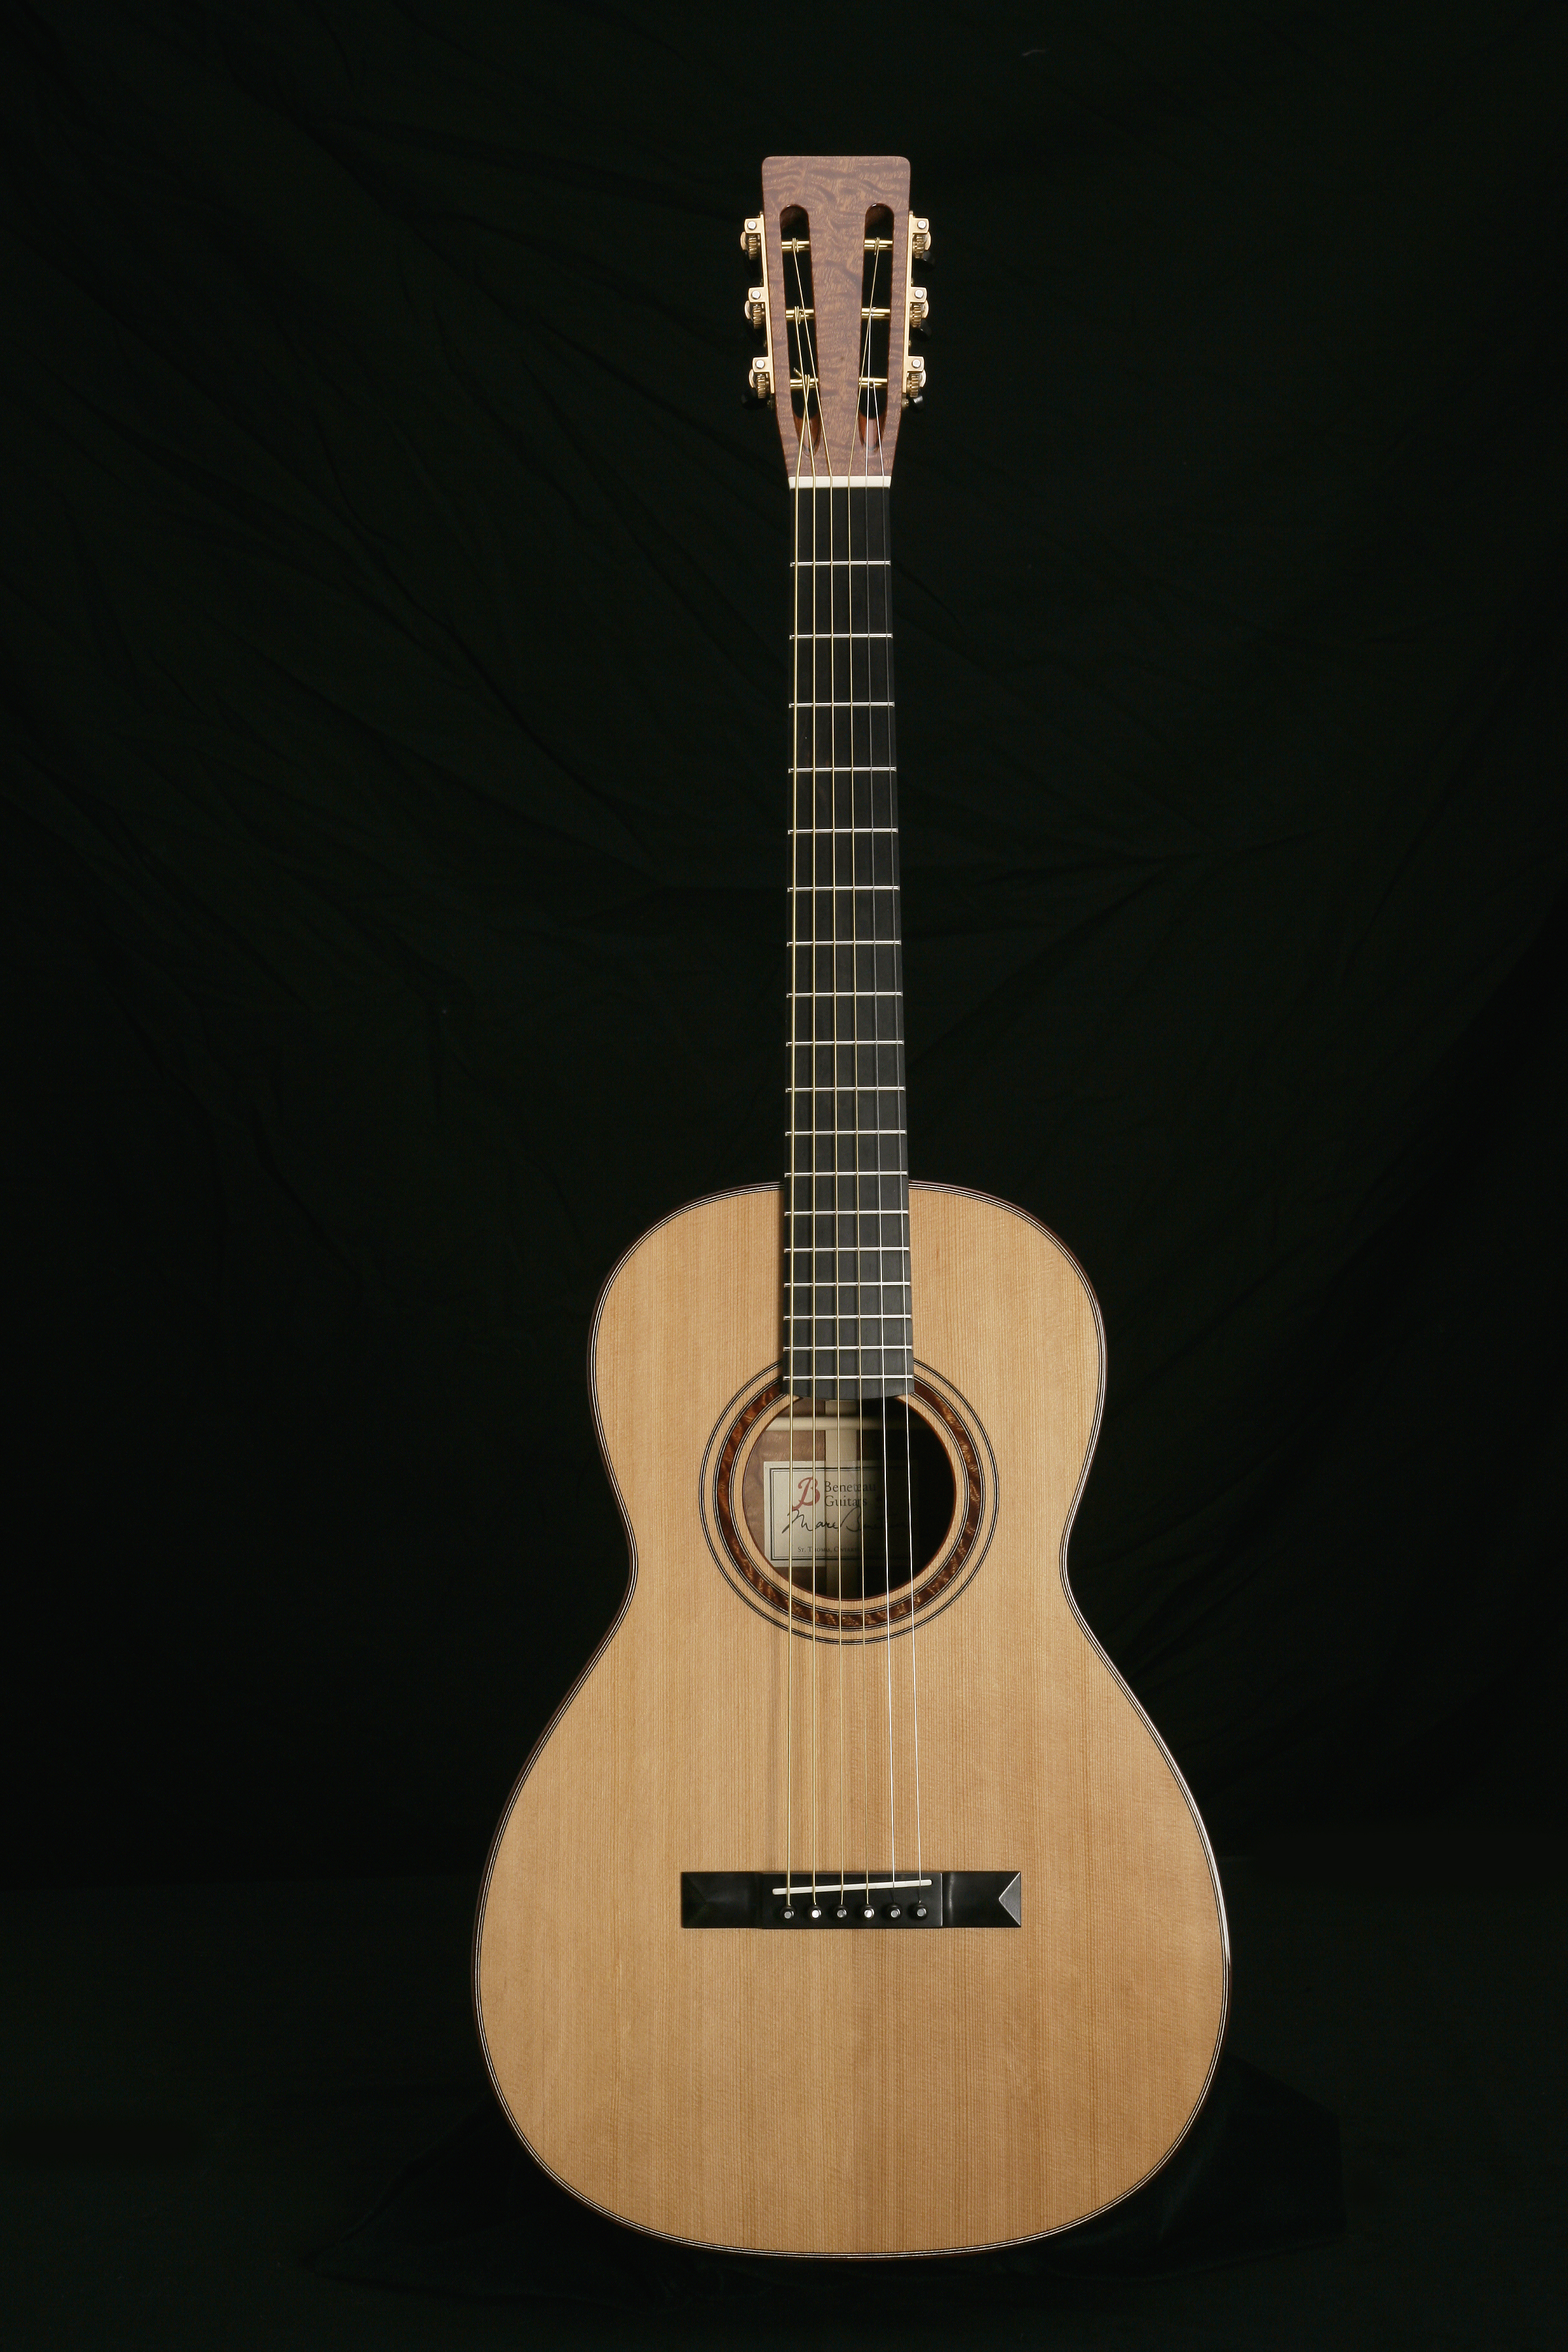 '0' 12 Fret Parlor - This is the quintessential parlor (parlour) guitar and the smallest model that I build. Extremely comfortable to play – the ultimate couch guitar. Well balanced tone from bass to mids to highs, a wonderful fingerstyle instrument.DimensionsUpper Bout: 9 3/8